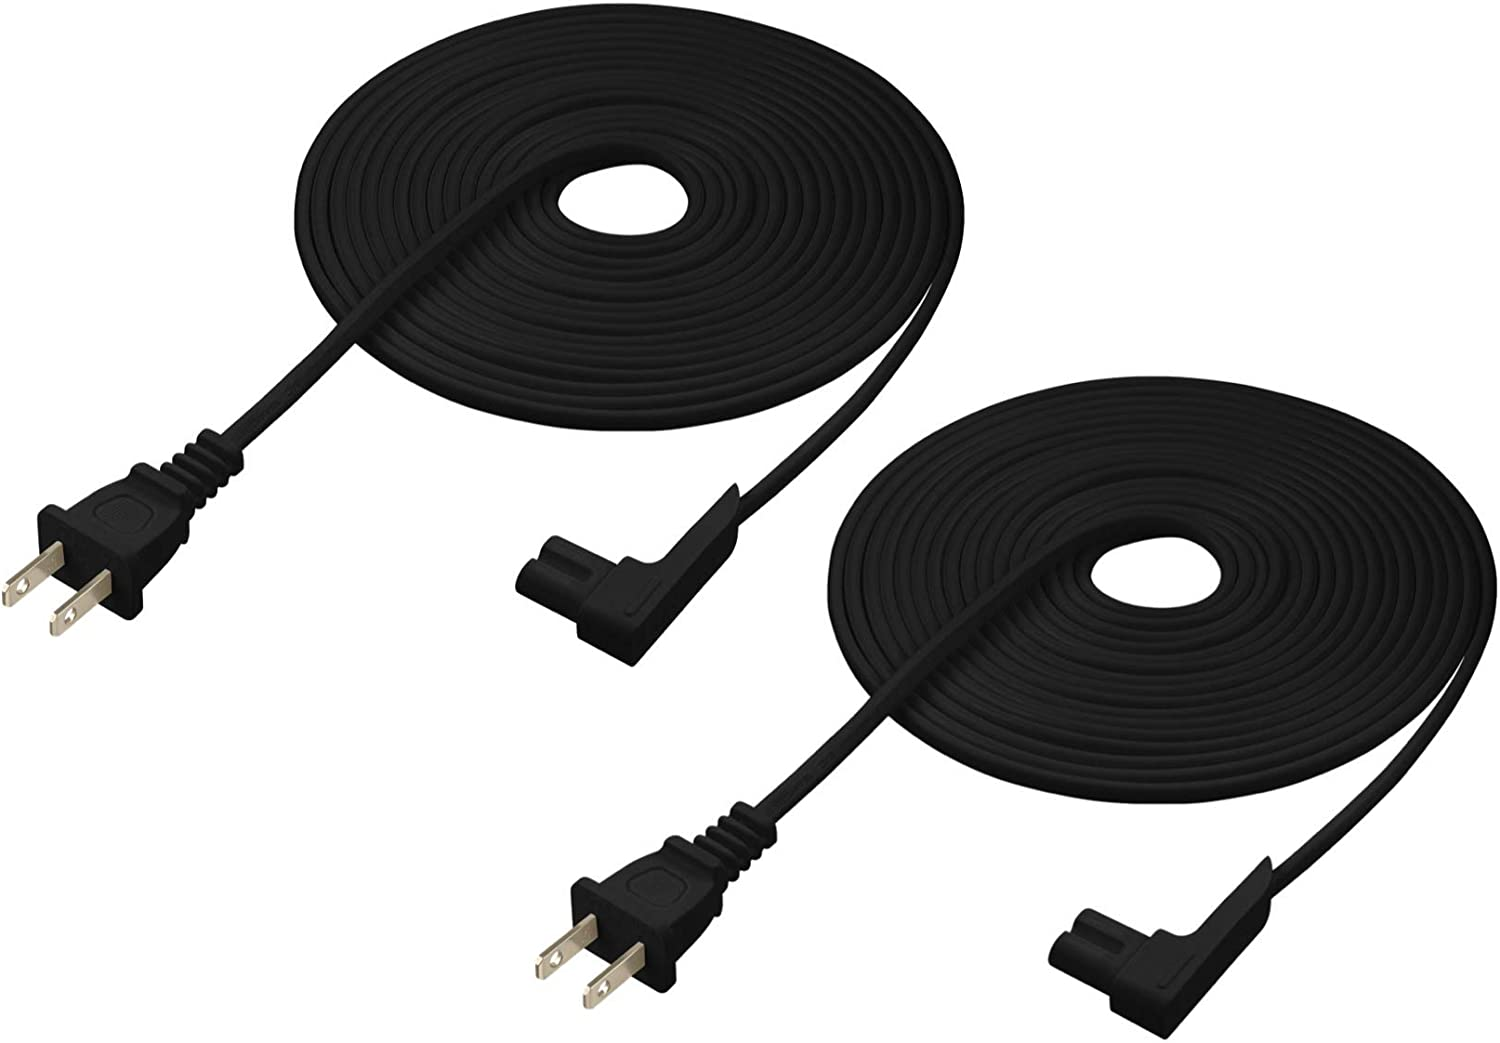 Vebner 16ft 2-Pack Power Cord Compatible with Sonos Play One Sonos Play-1 and Sonos One SL Speaker Extra Long, Black Compatible with Sonos Play One Extra Long Power Cable Cord